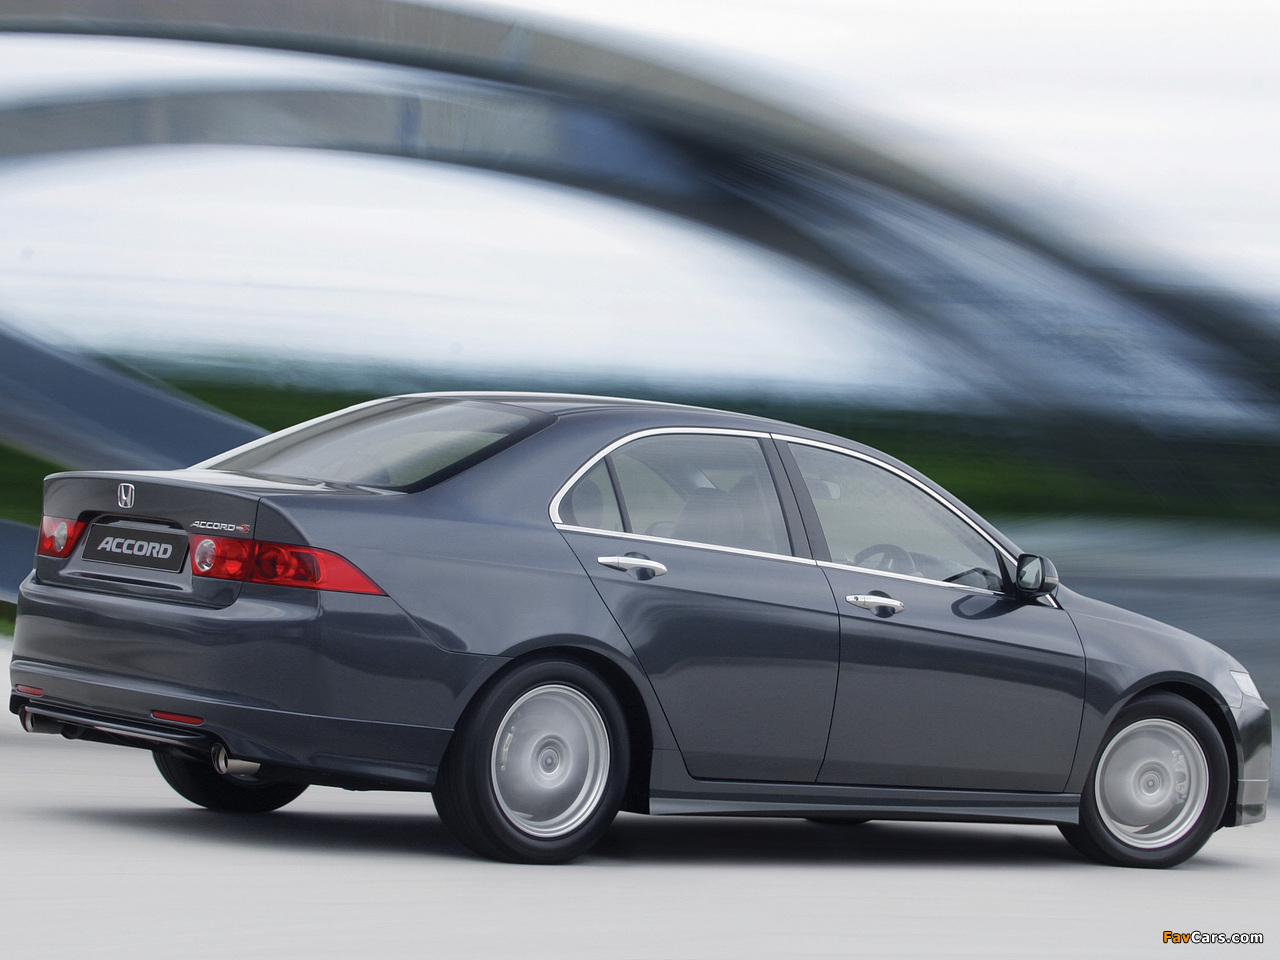 images of honda accord type s cl9 2003 06 1280 x 960